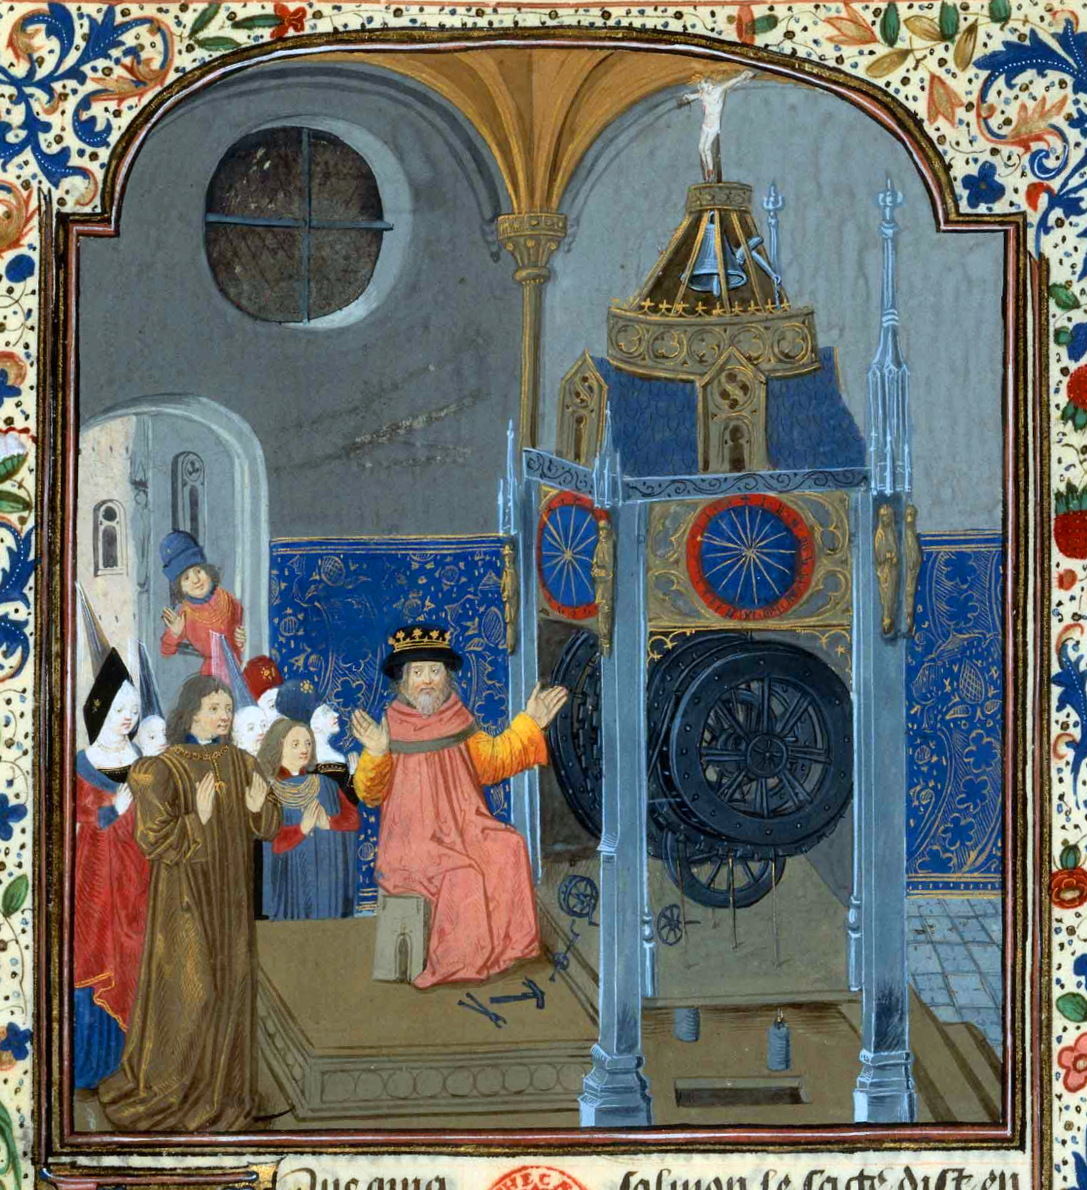 King Solomon repairing a mechanical clock, from Horloge de Sapience, 1461-65, Bibliotheque Nationale, MS fr. 455, fol 9.